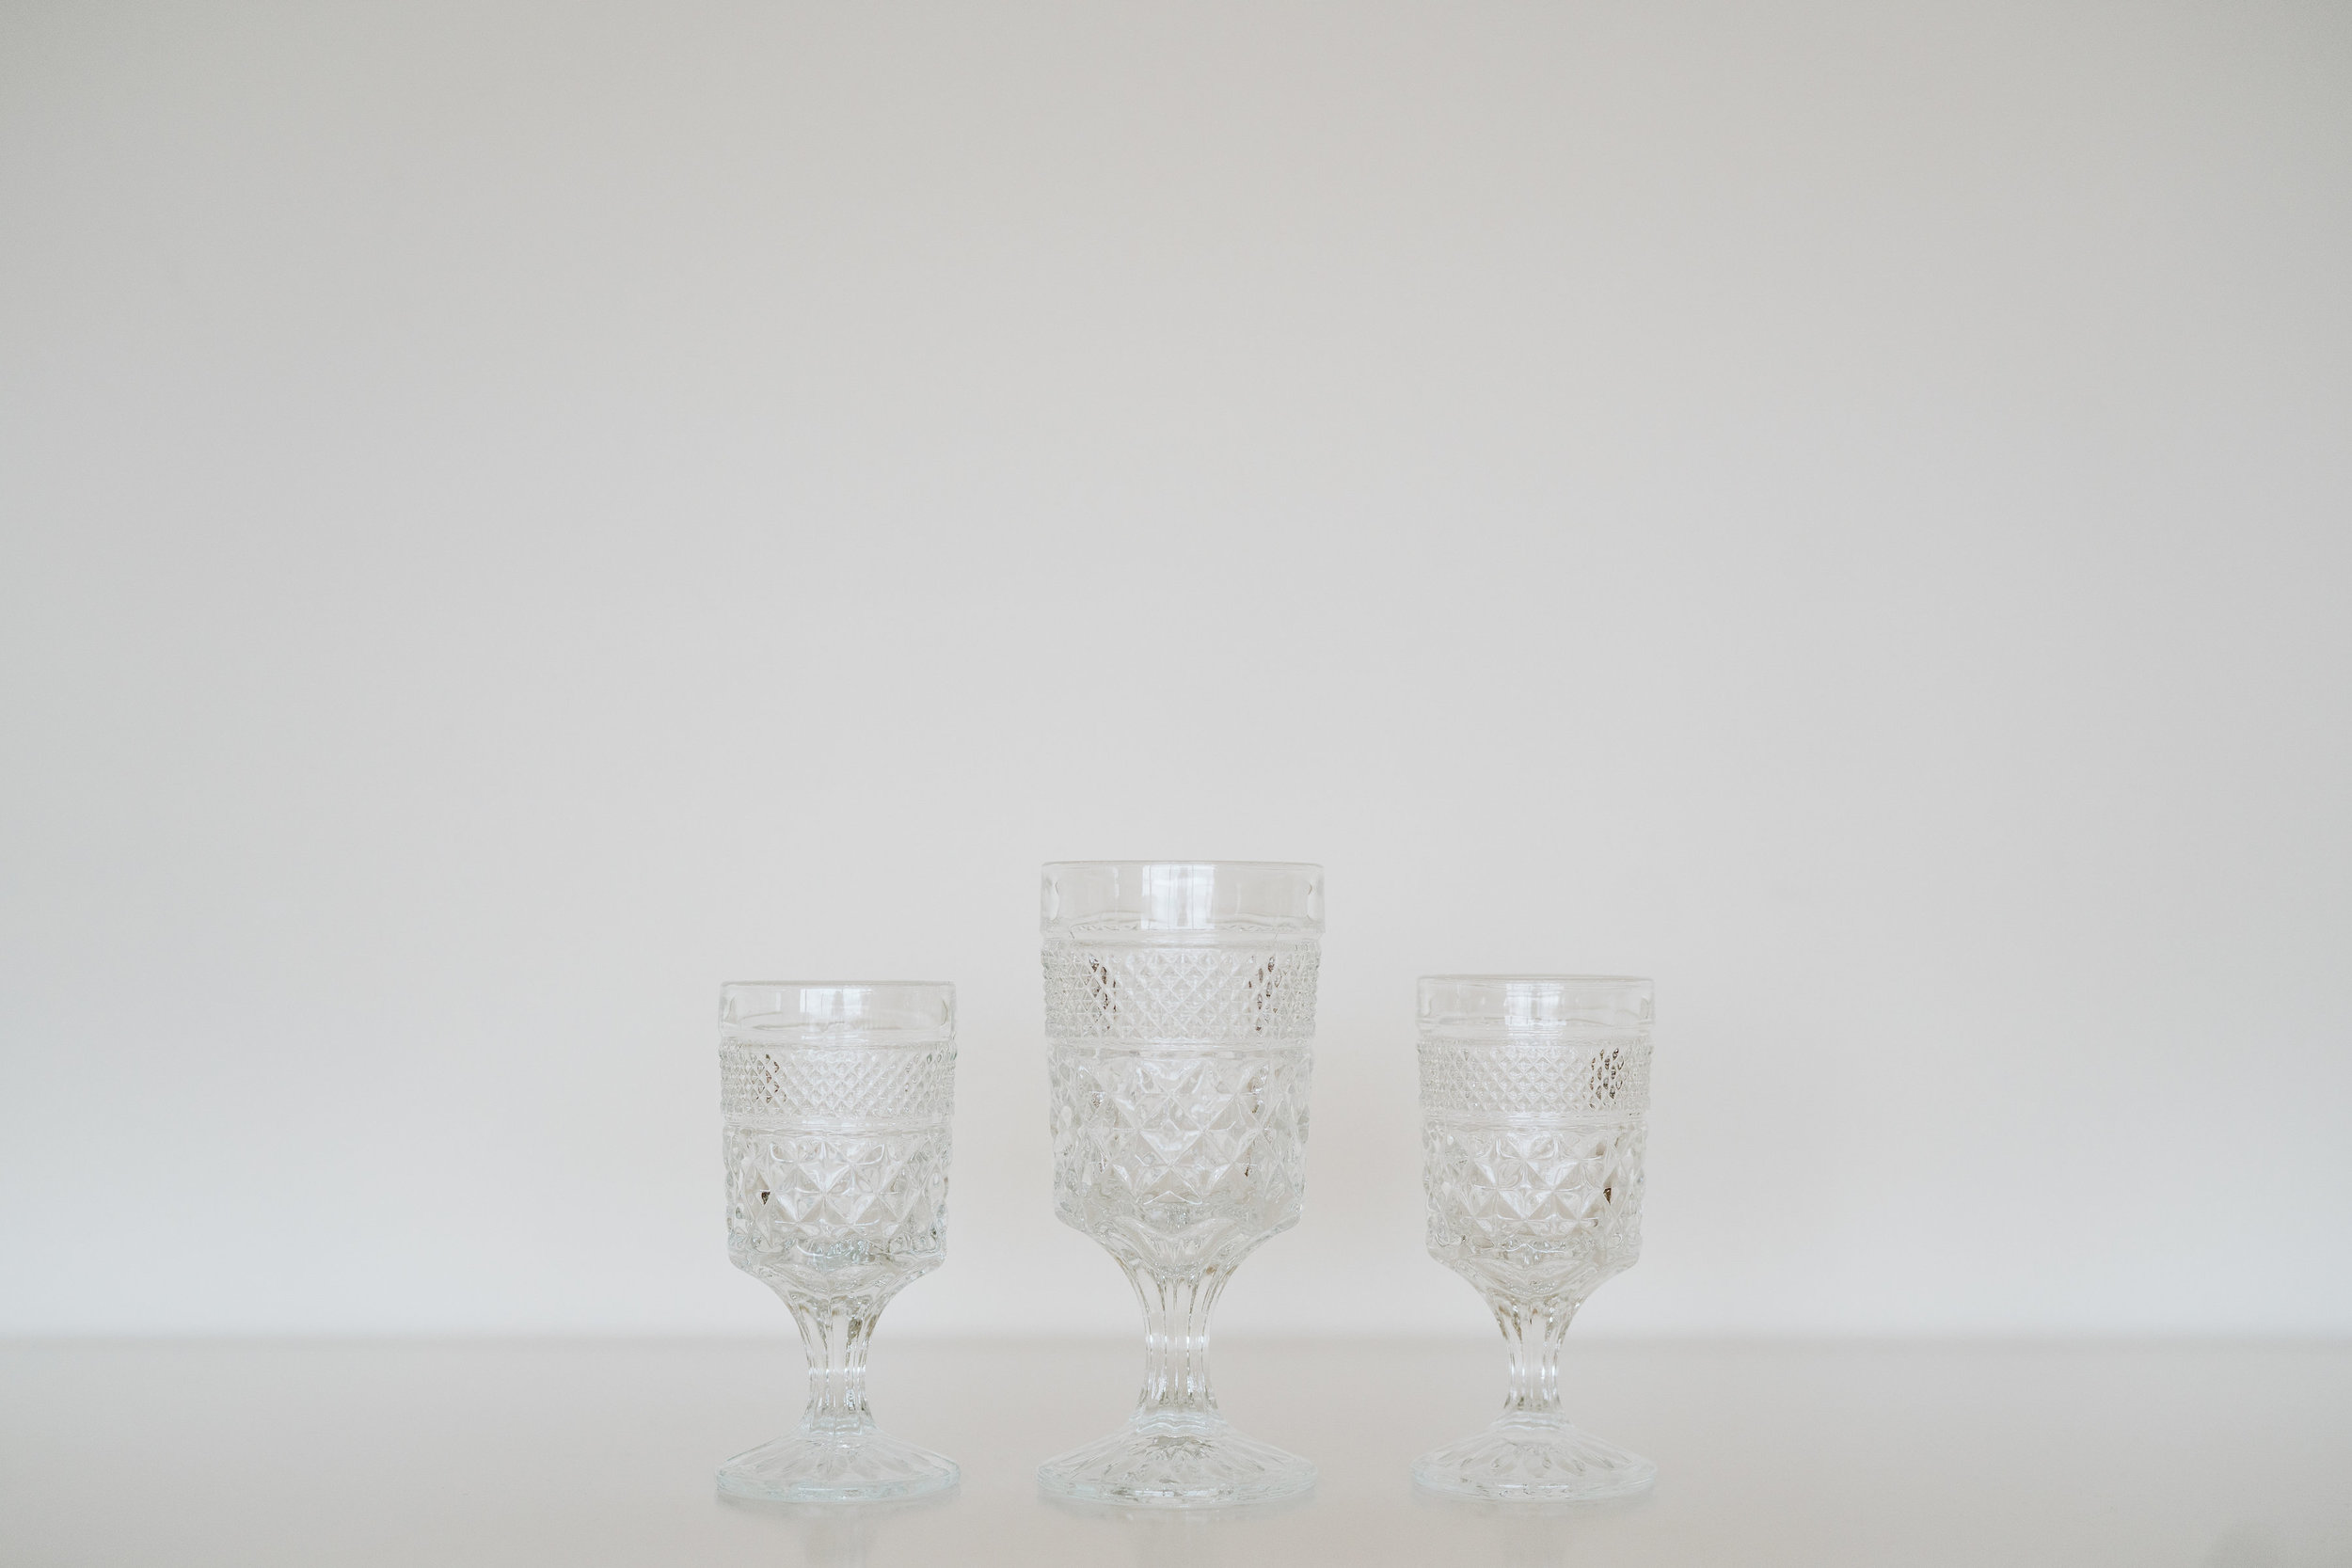 WEXFORD GOBLETS